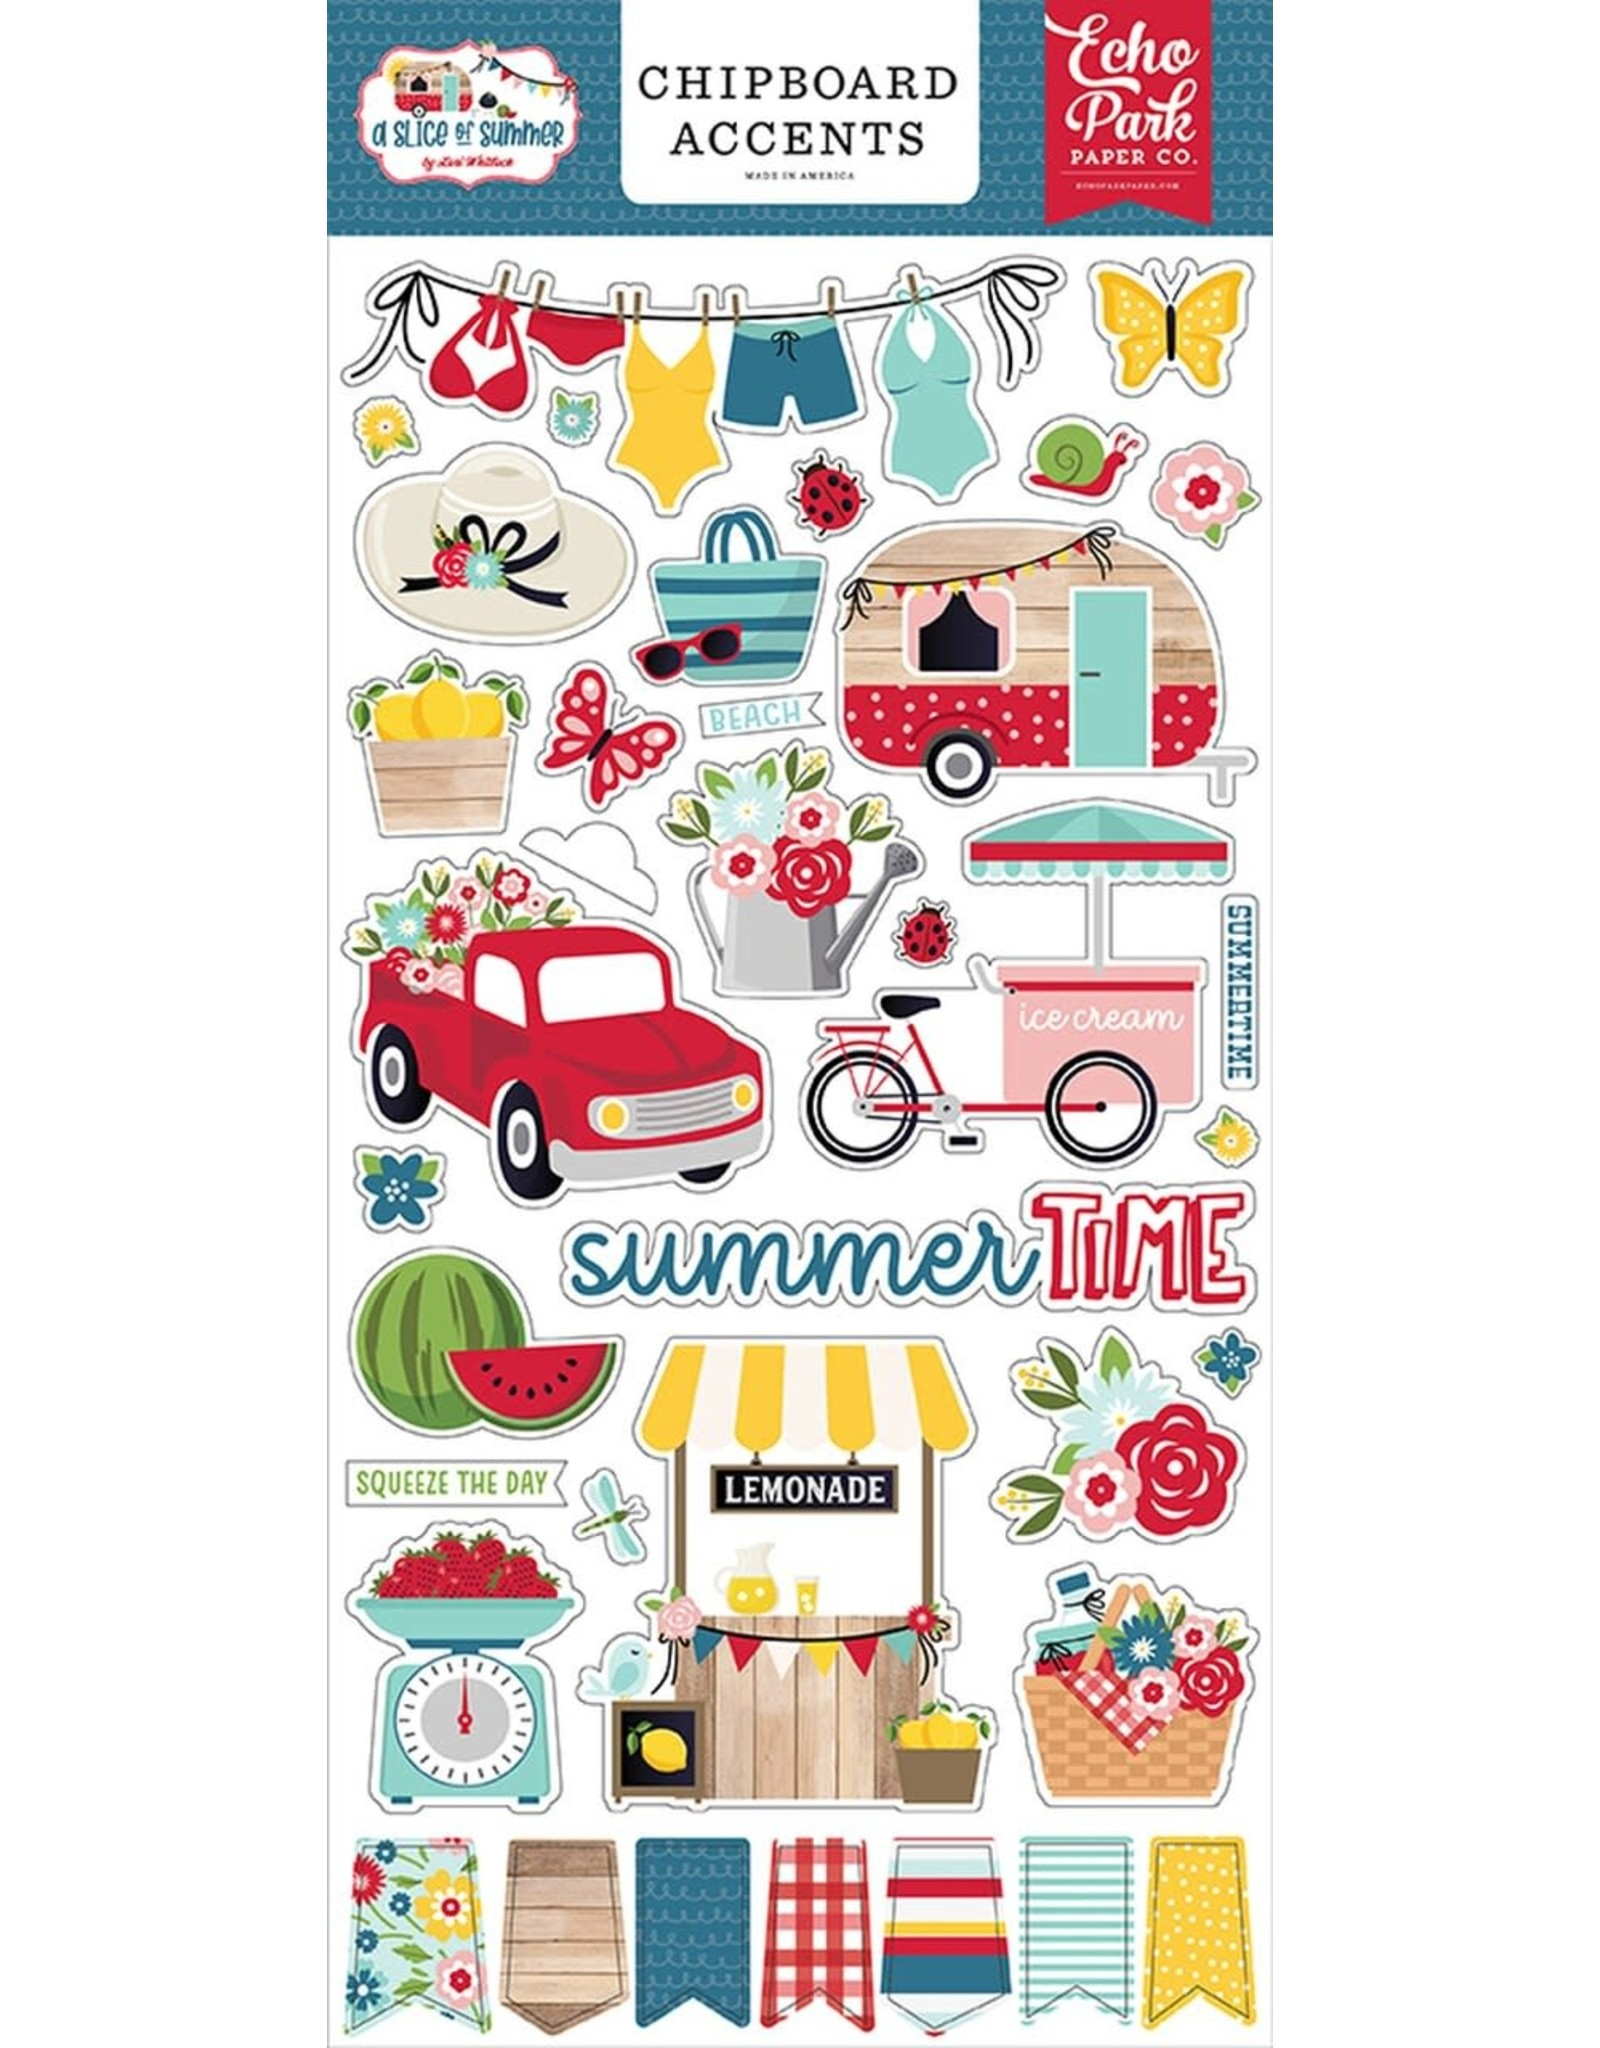 Echo Park A Slice of Summer - Chipboard Accents 6x13